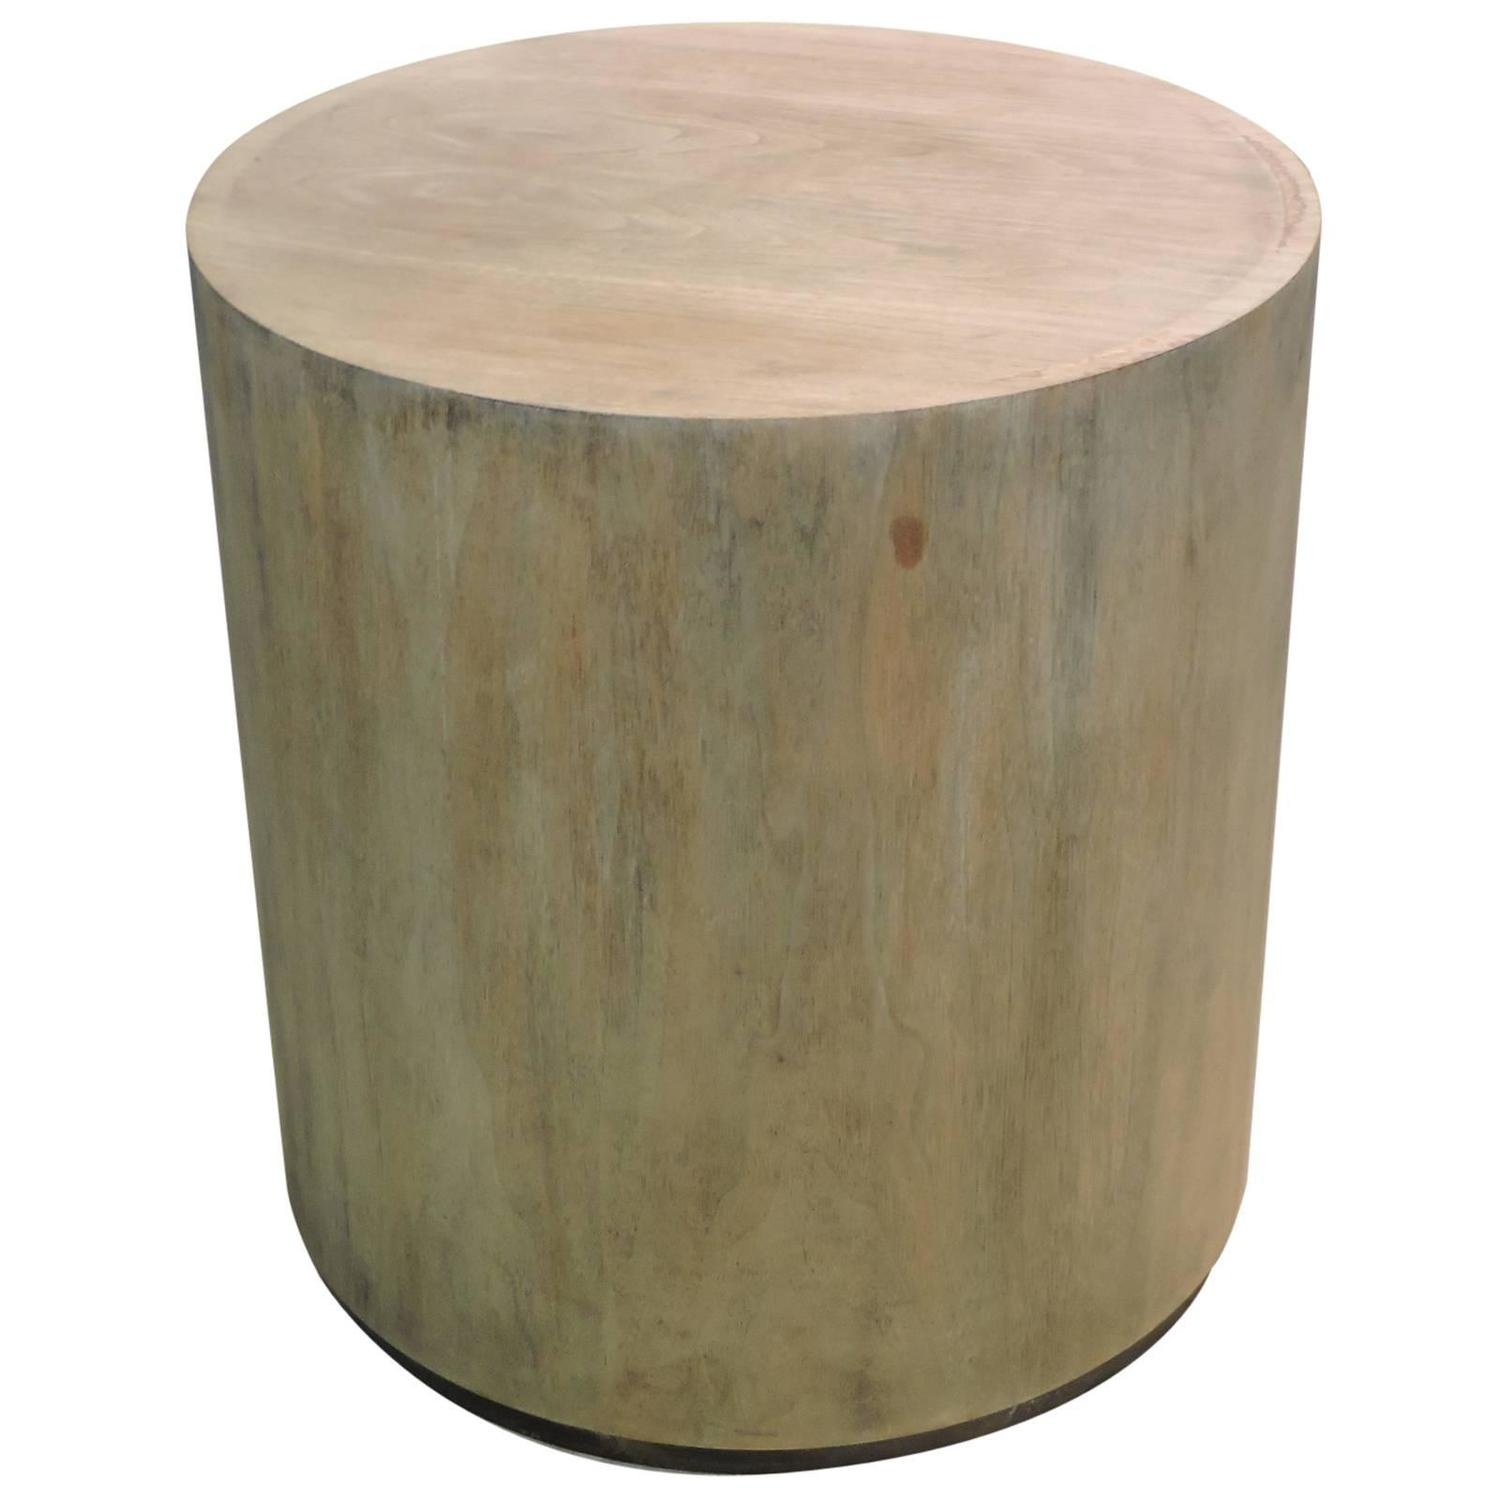 sushi pedestal wood dining kit square base throughout attractive com top copper eaton s ege round and table awesome for only